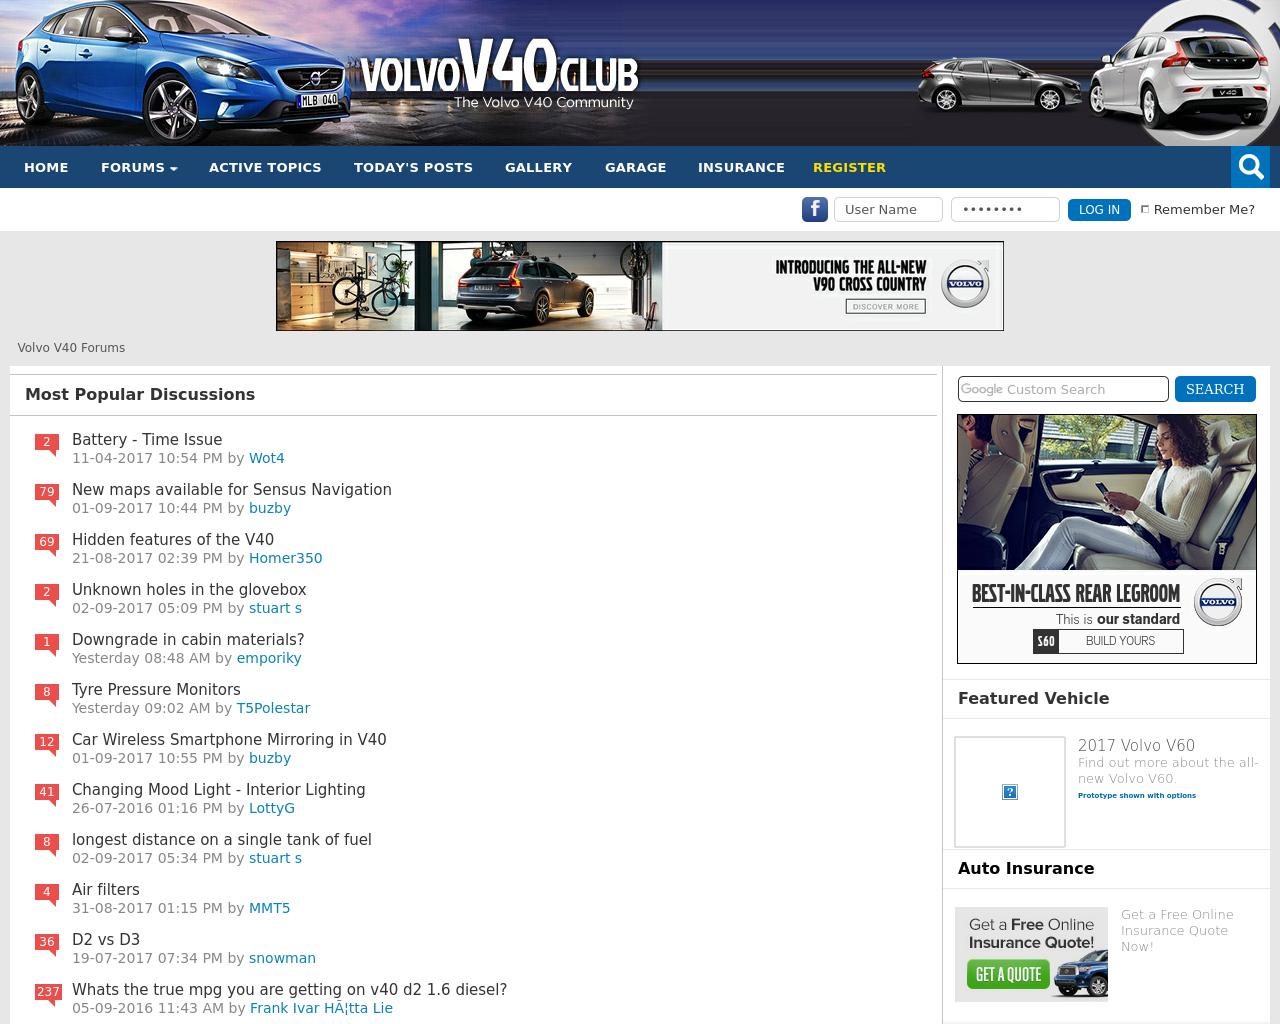 Volvo-V40-Forums-Advertising-Reviews-Pricing